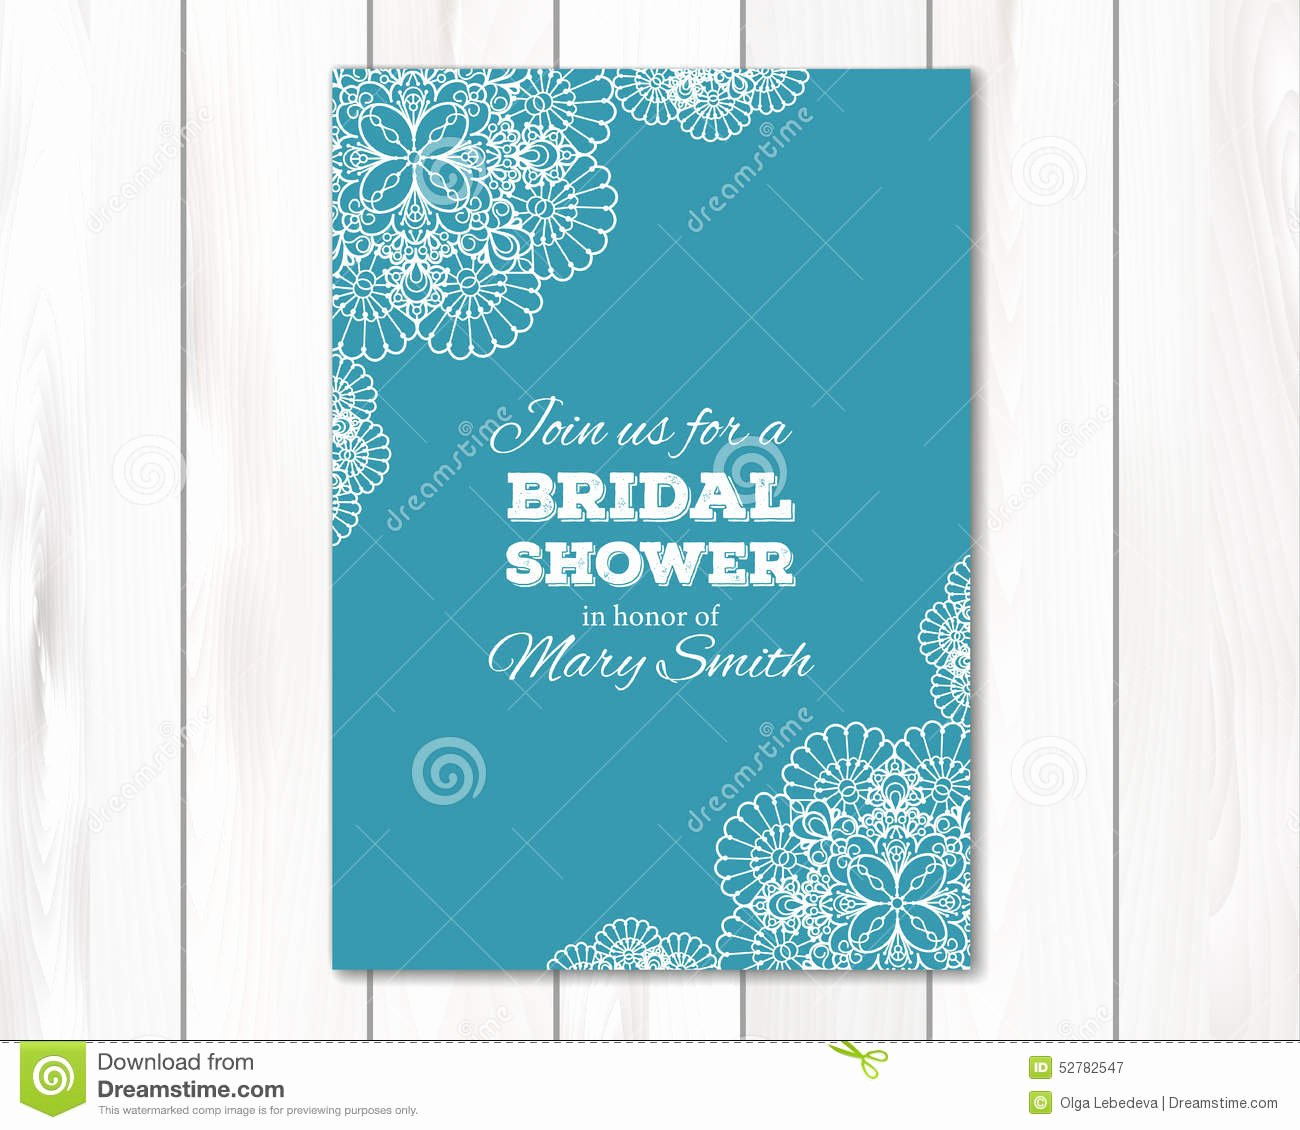 Bridal Shower Card Template Elegant Bridal Shower Wedding Invitation Card Template Stock